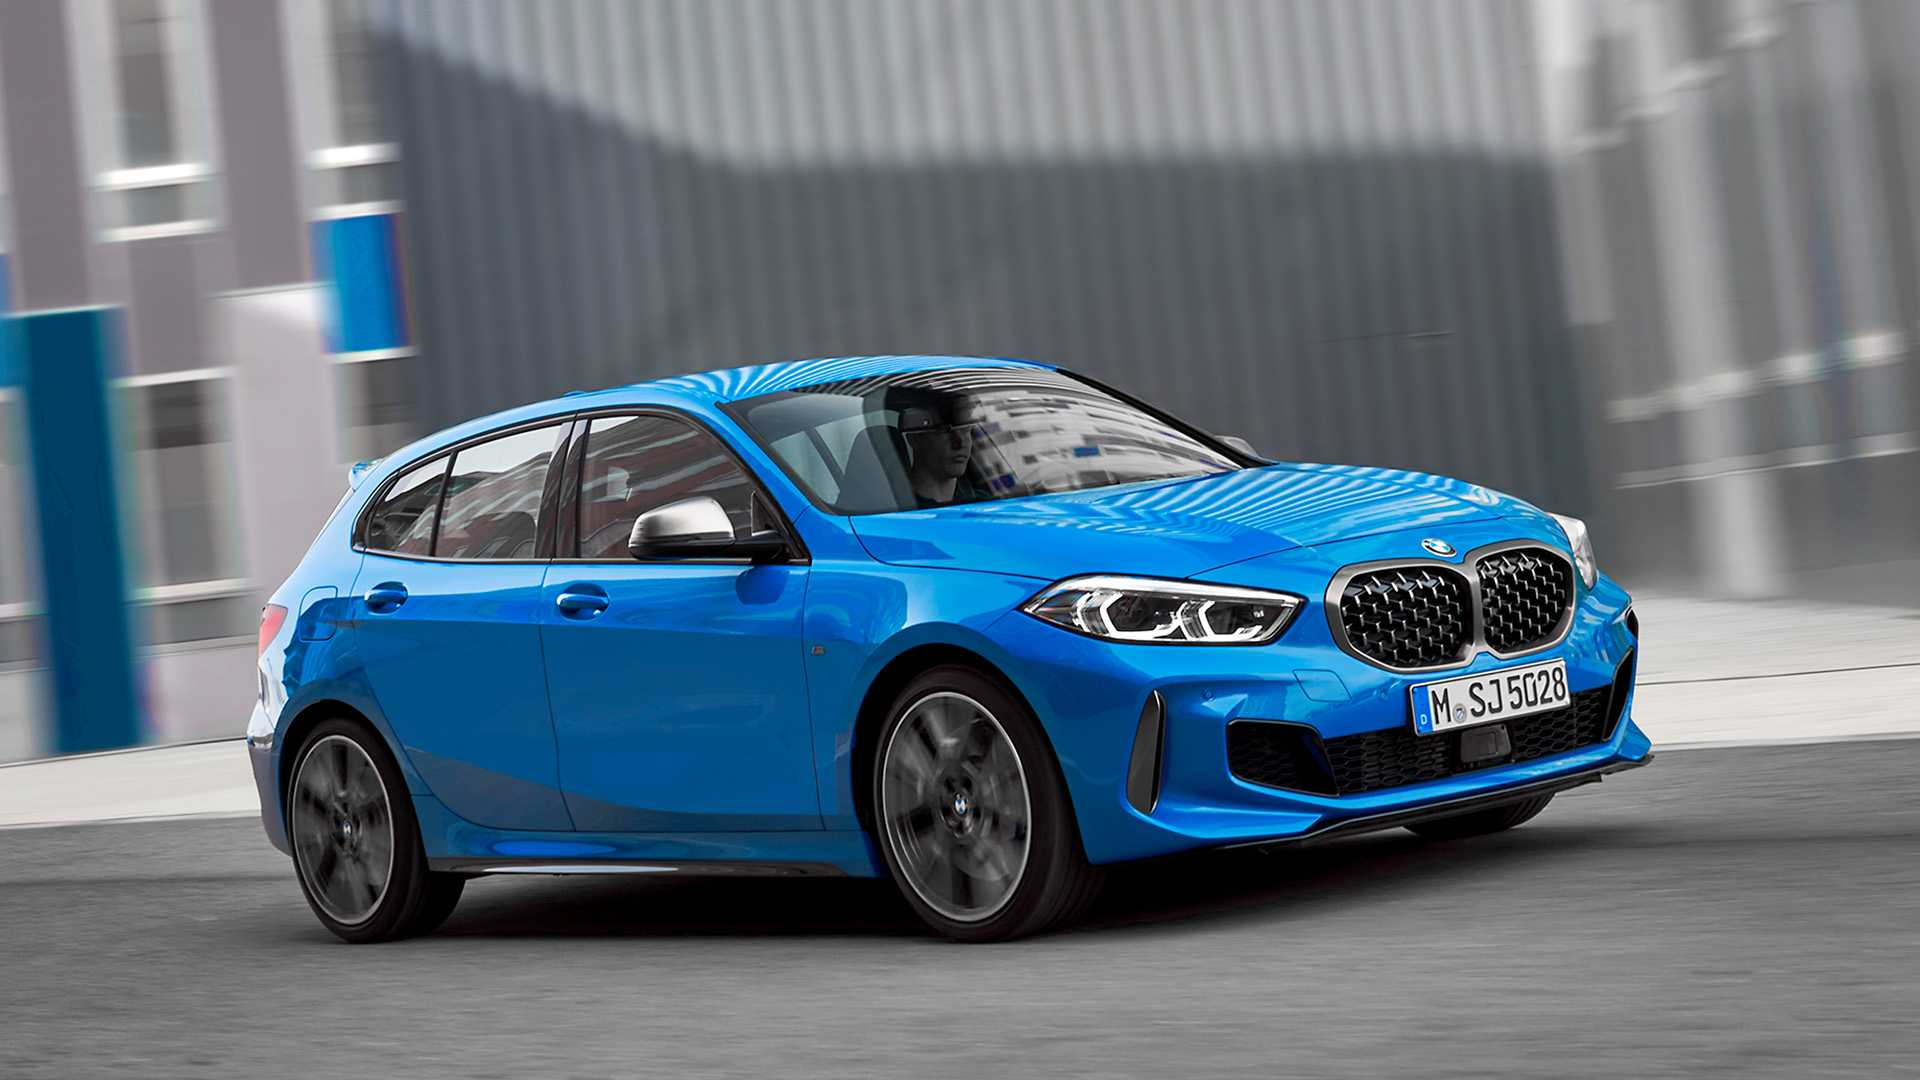 BMW 1 Series vs. 2015 BMW 1 Series - Old vs